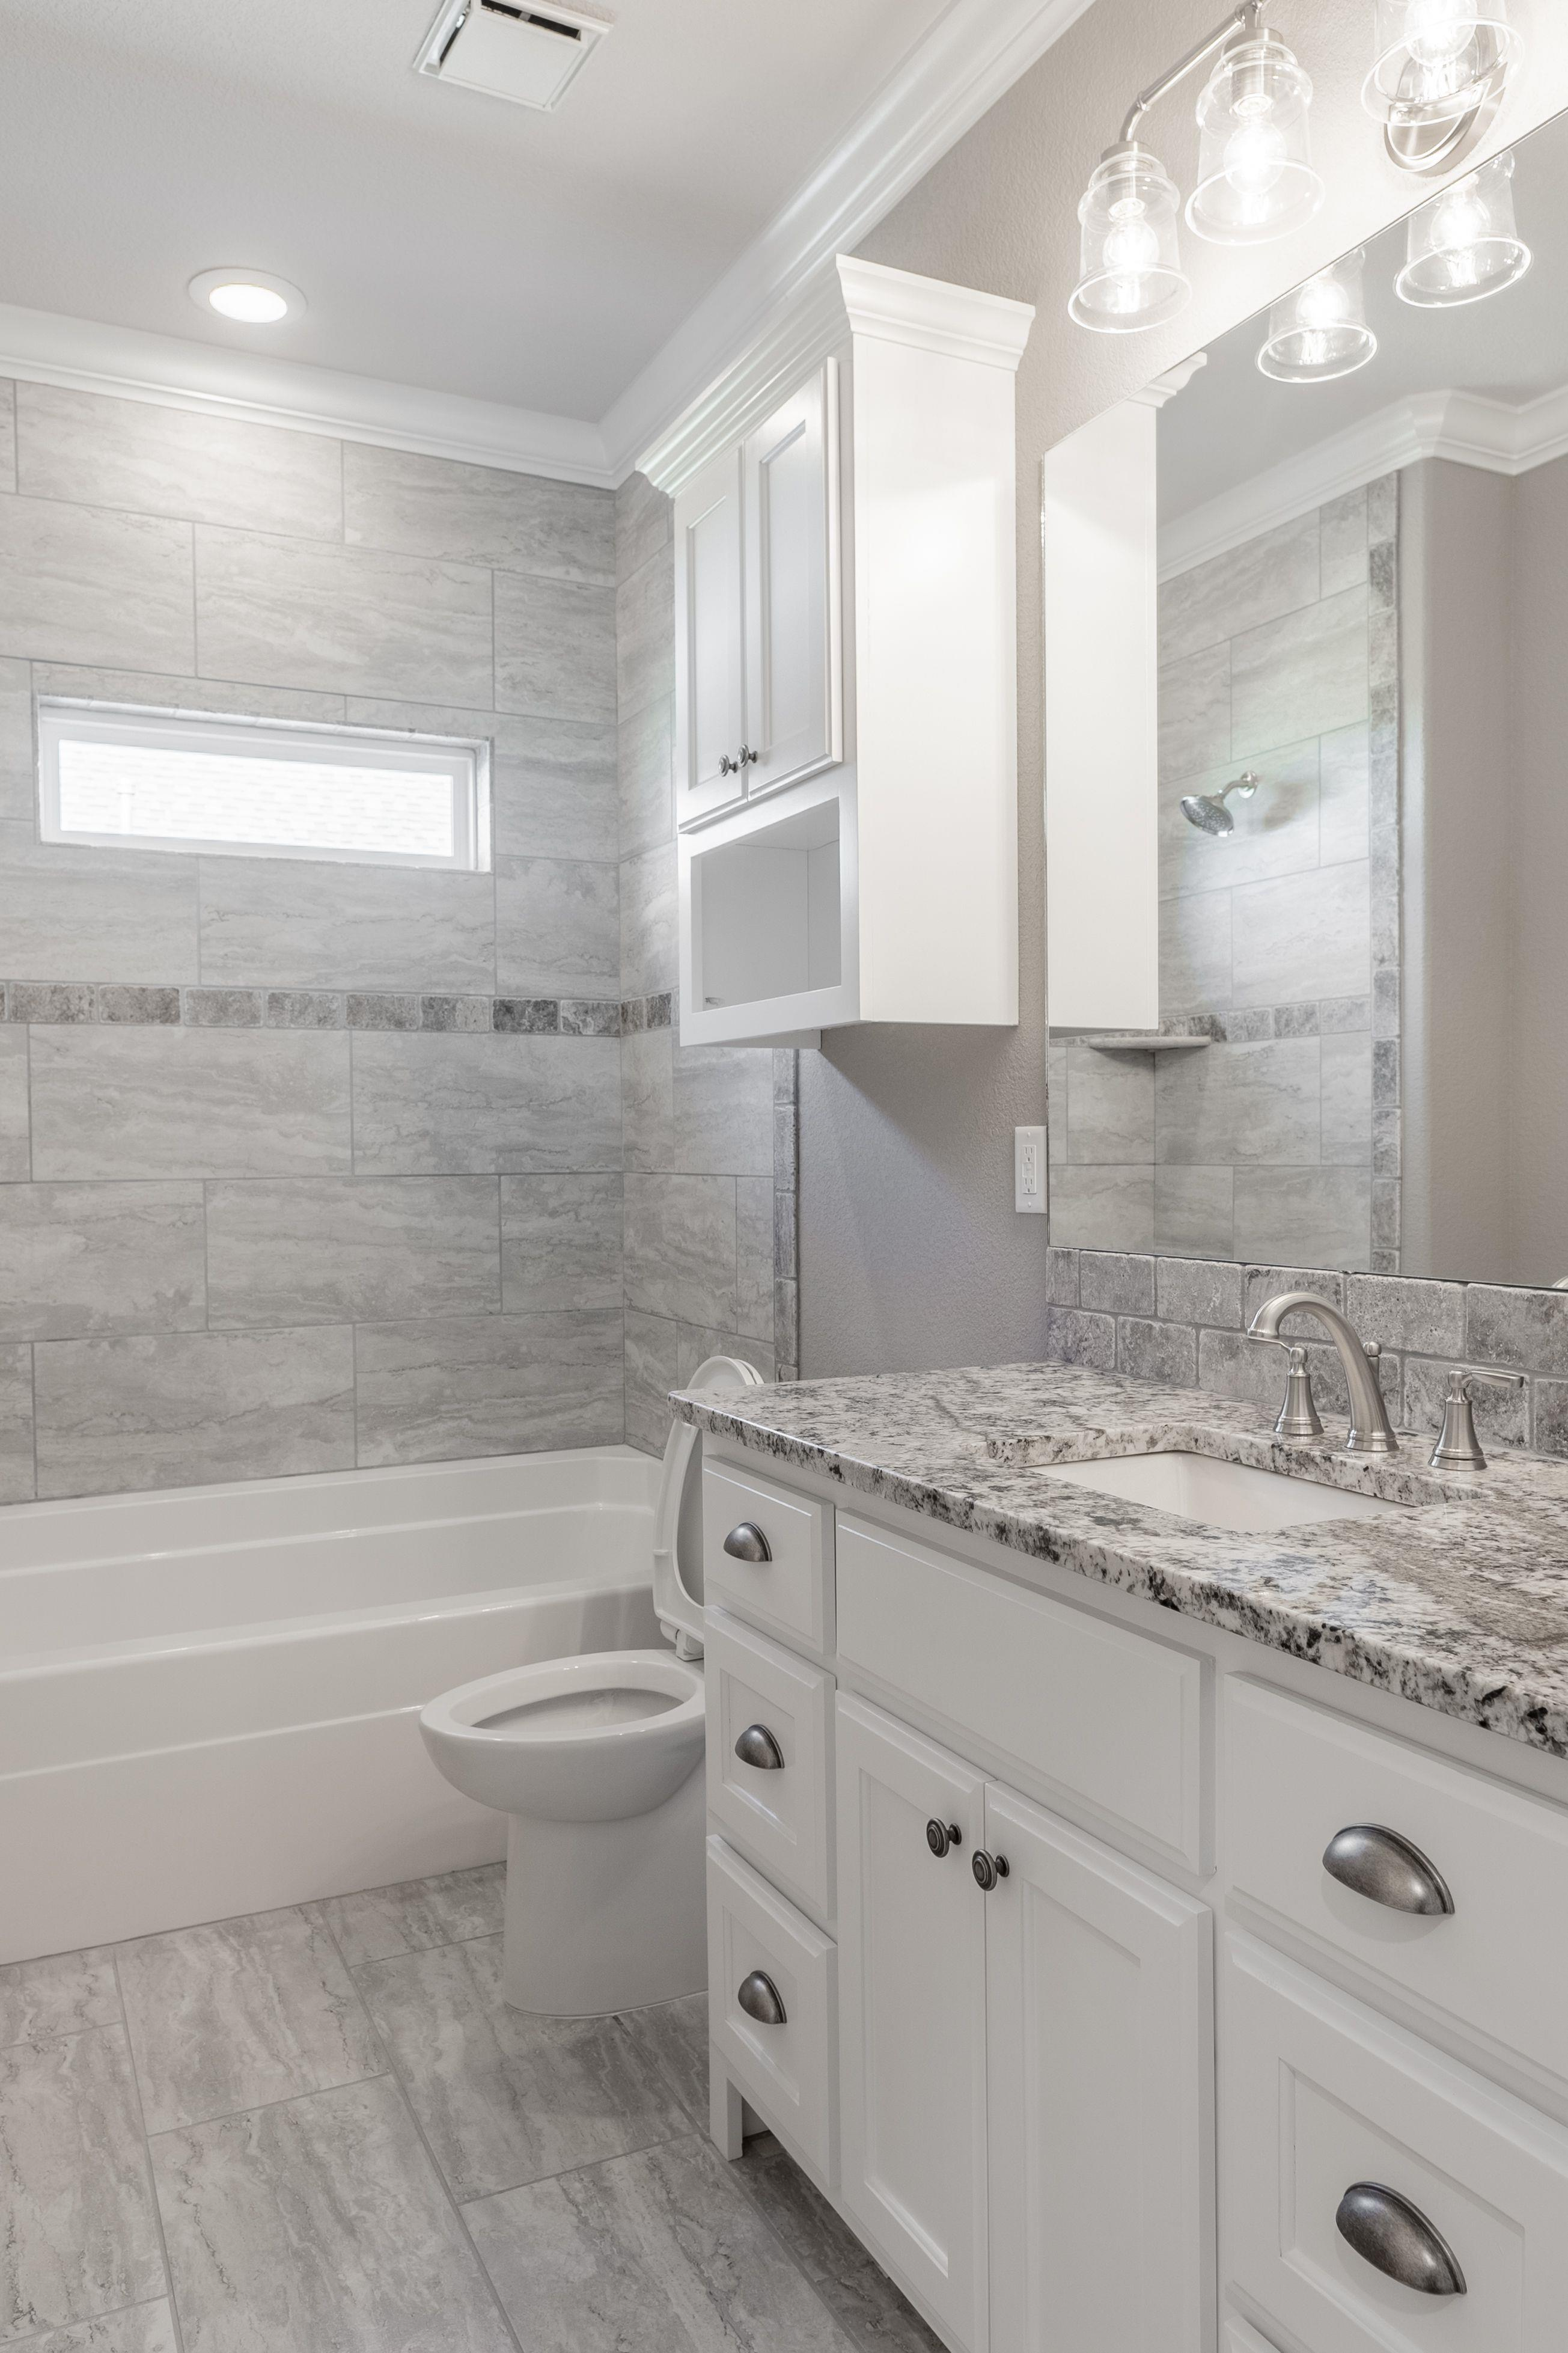 Bathroom featured in the Vine 2450 By Riverwood Homes - Arkansas in Fayetteville, AR